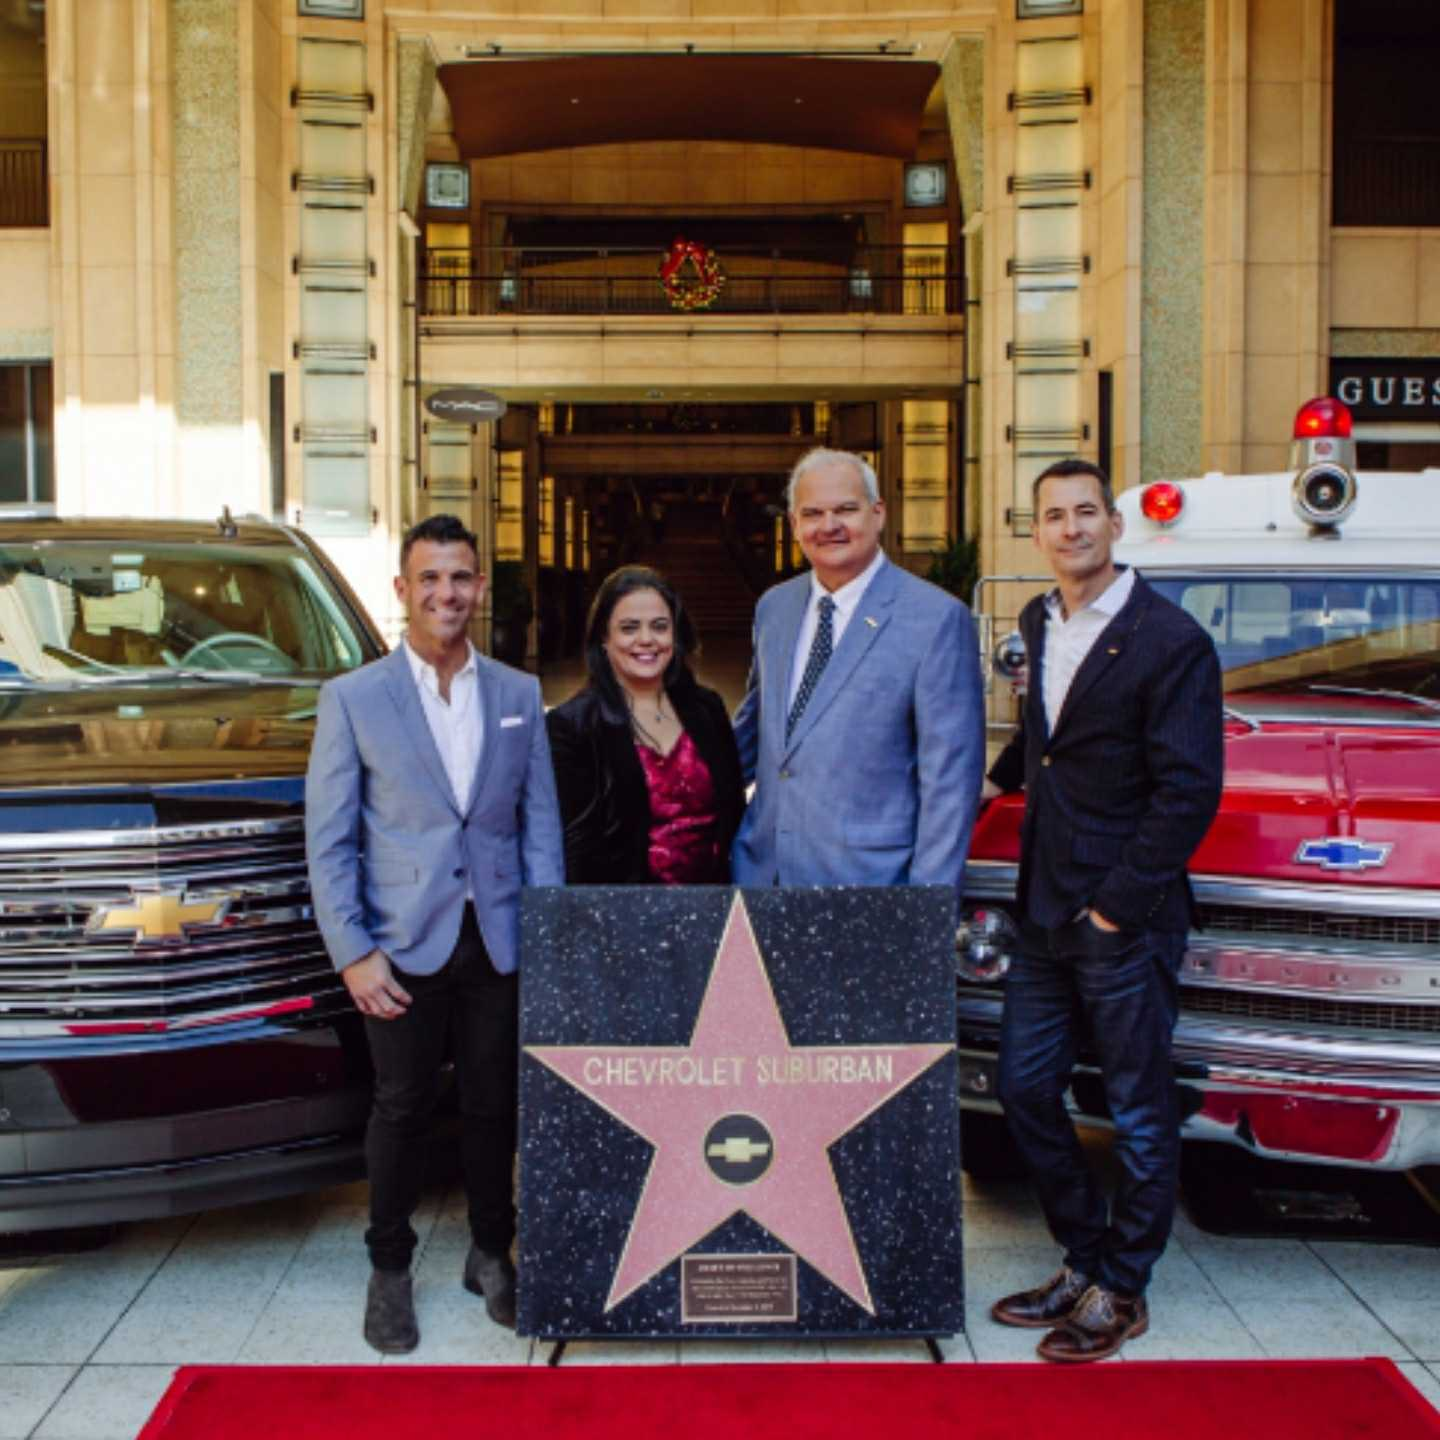 Chevy Tahoe, Chevrolet Suburban, Hollywood star, 360 MAGAZINE